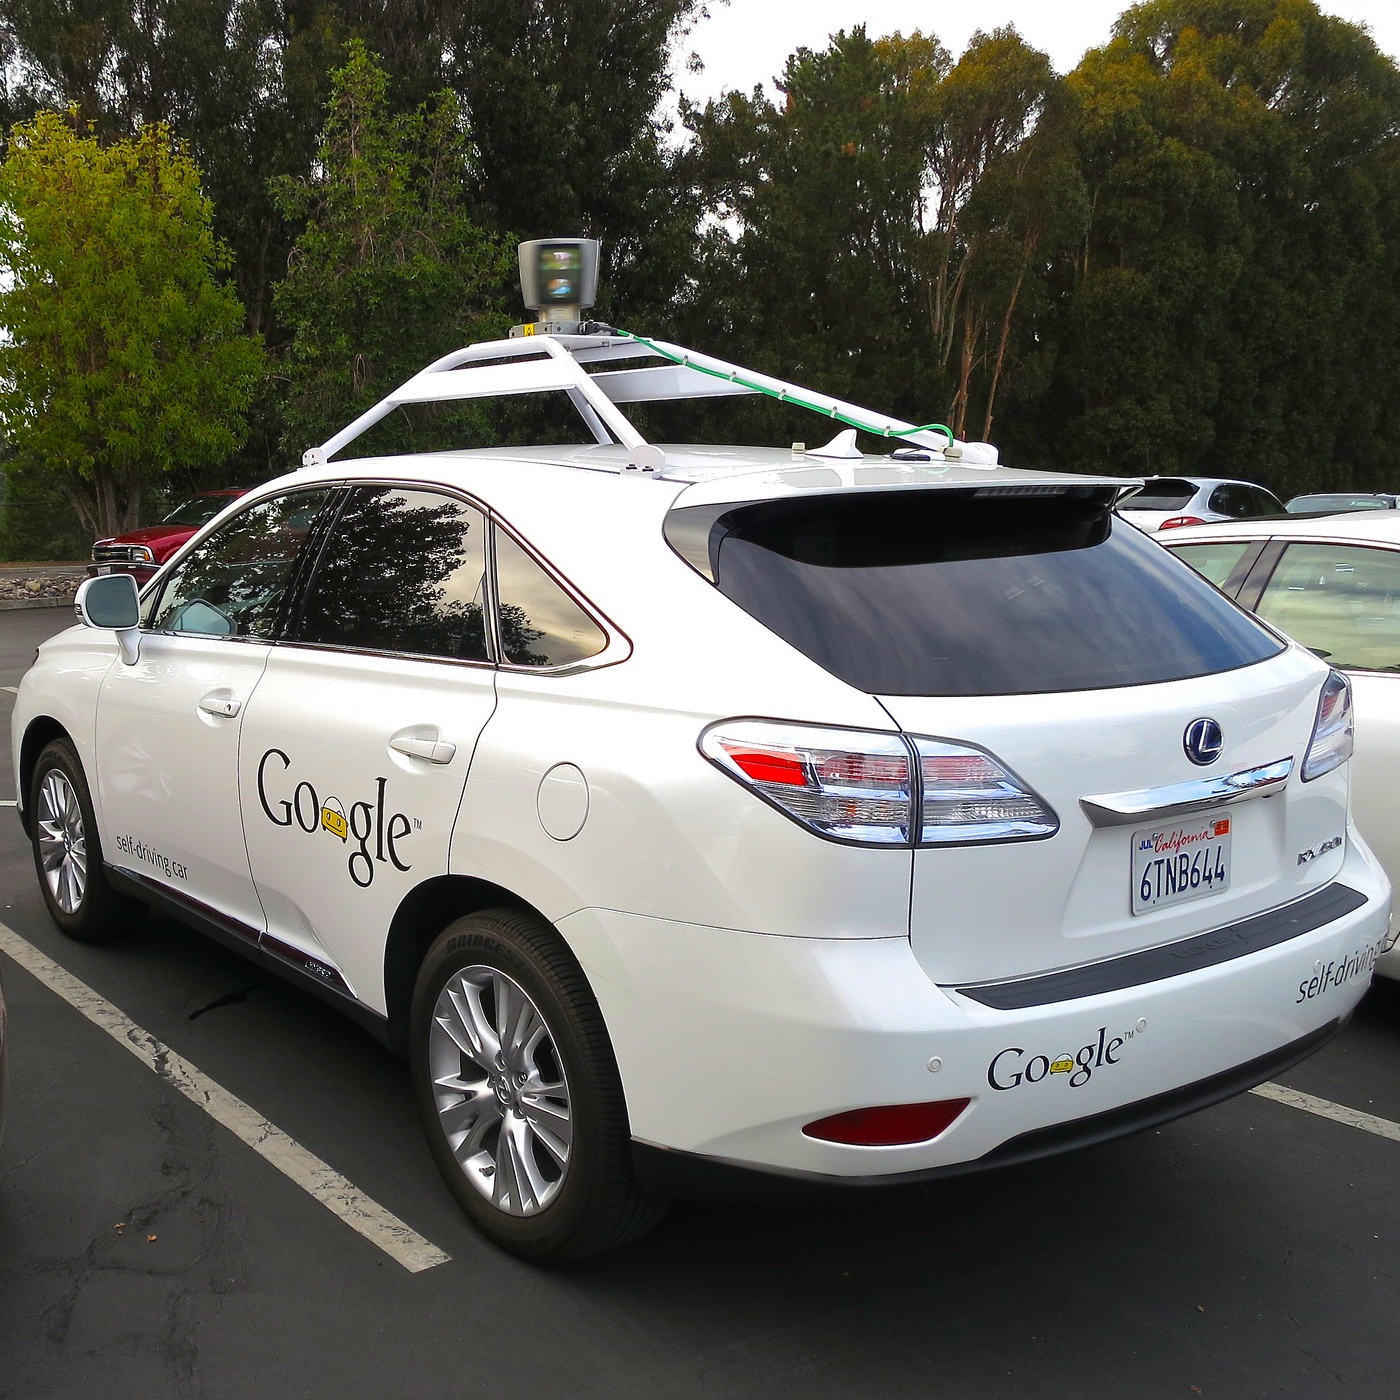 Lexus RX450h retrofitted by Google for its driverless car fleet. Photo by Steve Jurvetson/flickr/CC BY 2.0